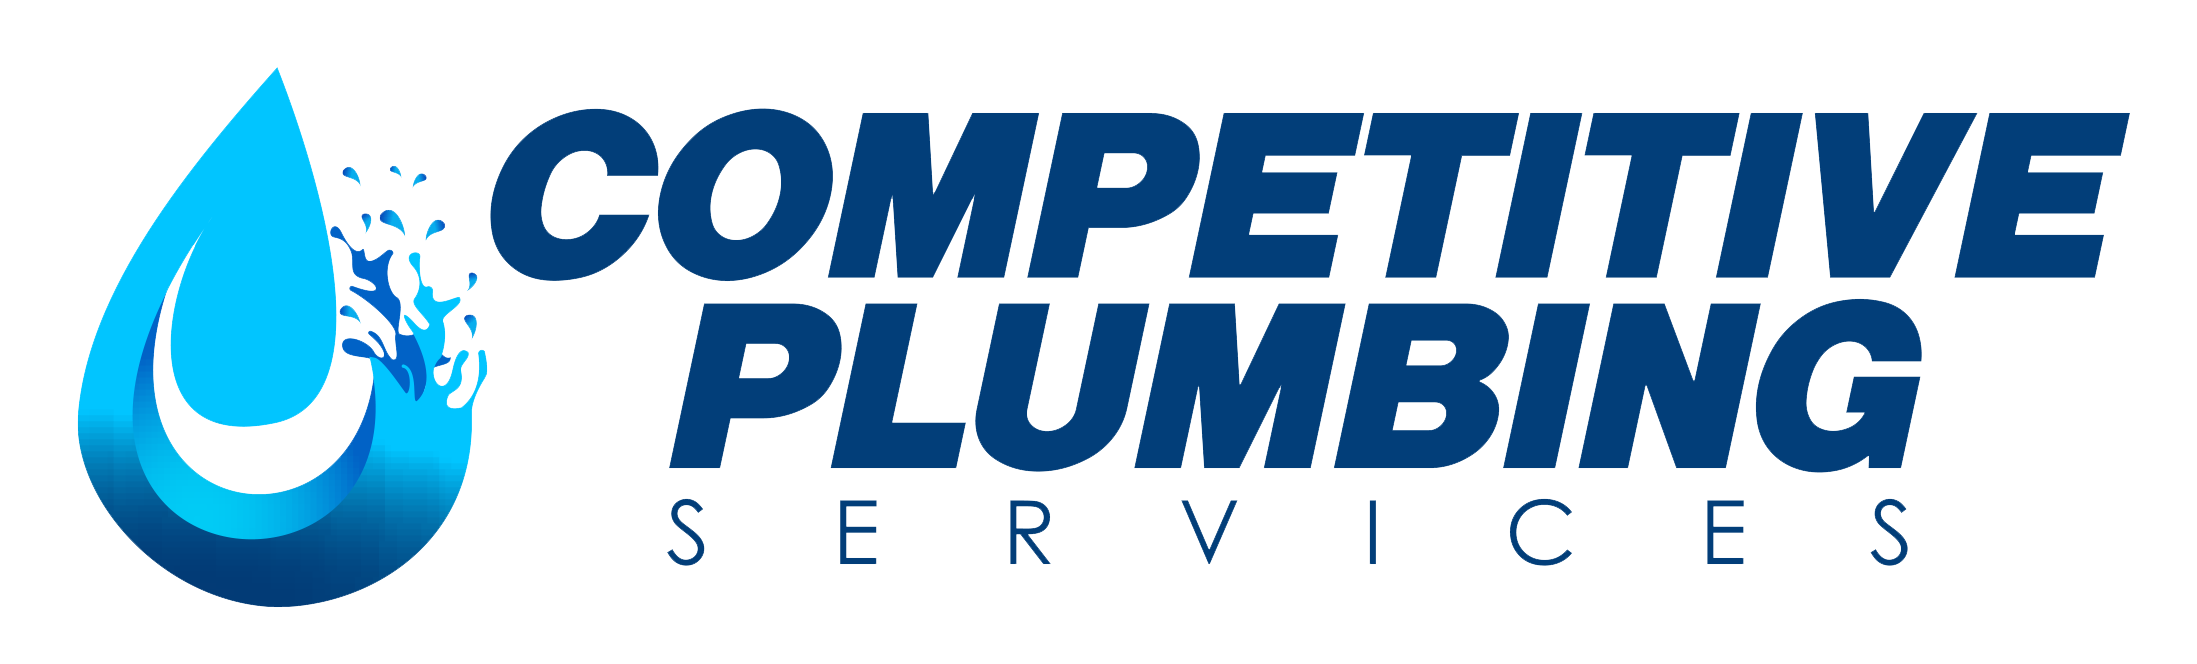 Competitive Plumbing